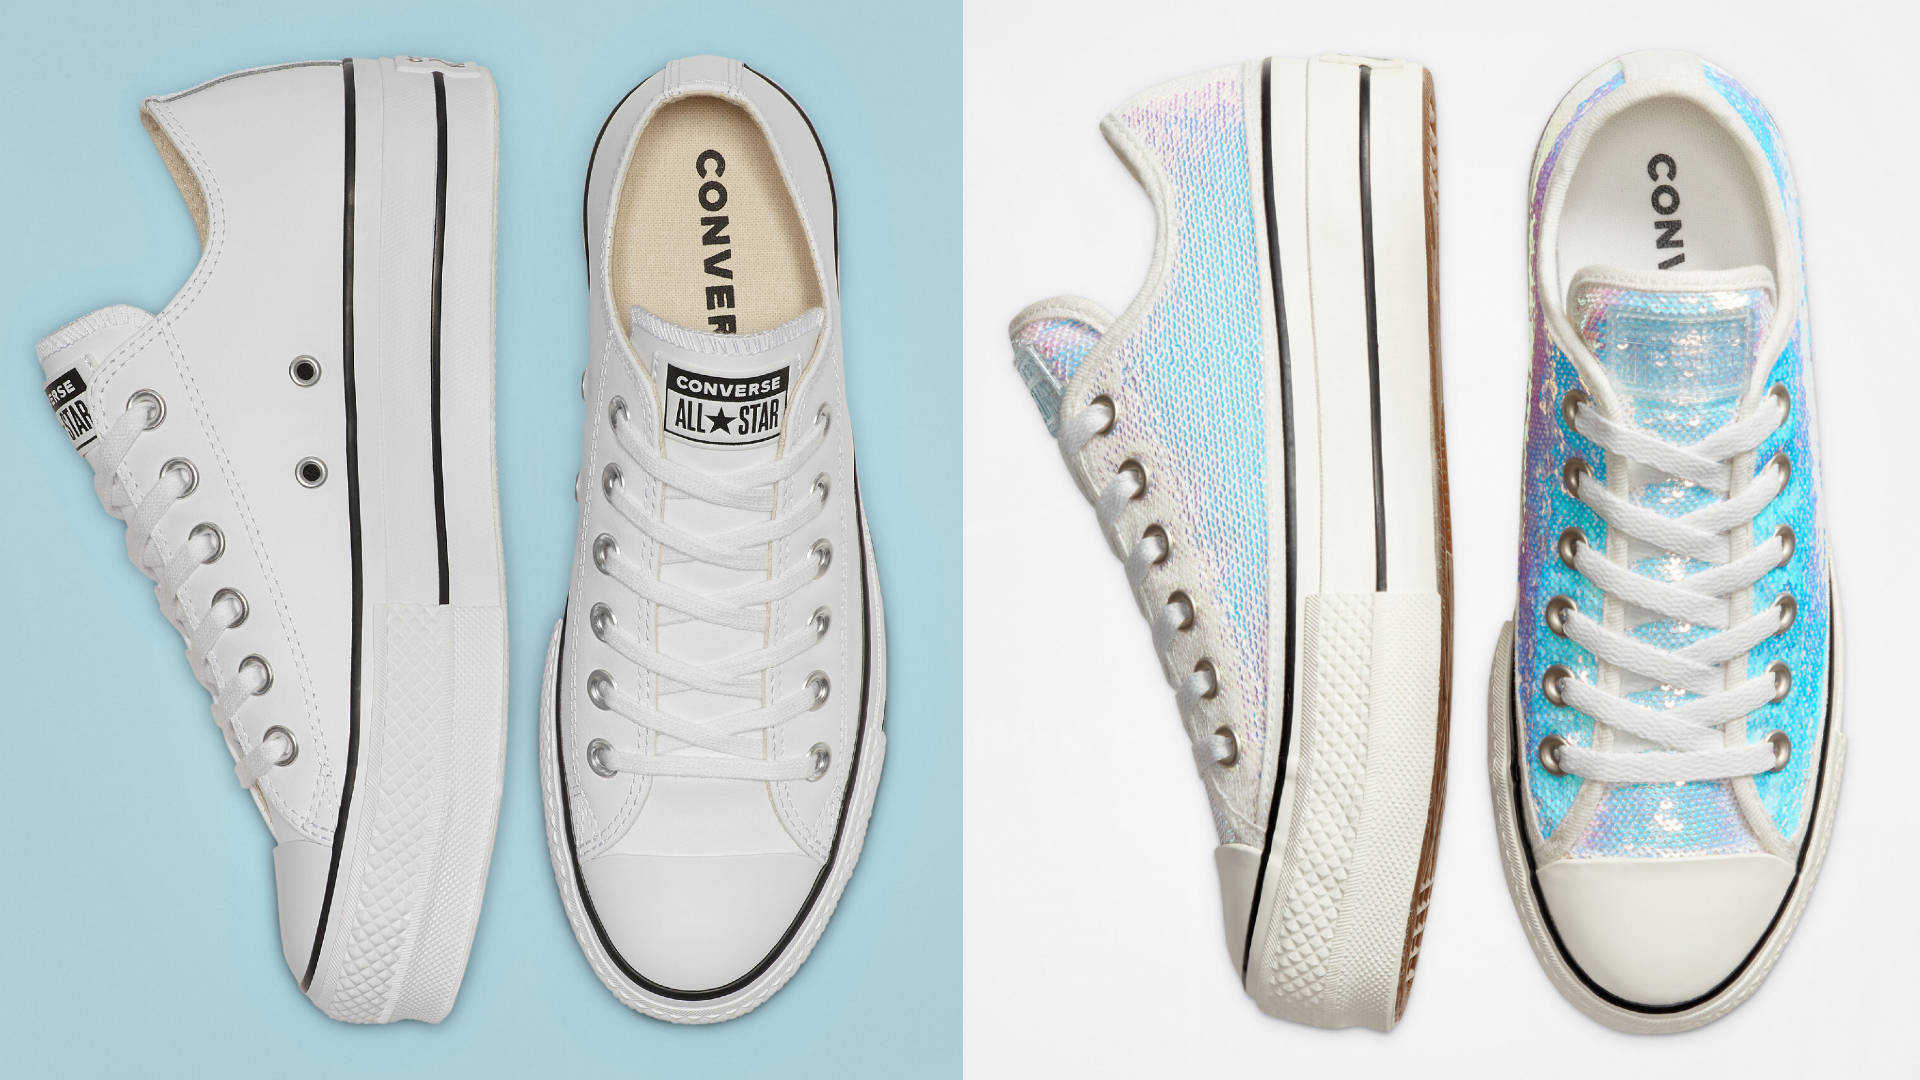 Converse is selling a brand new range of bridal sneakers